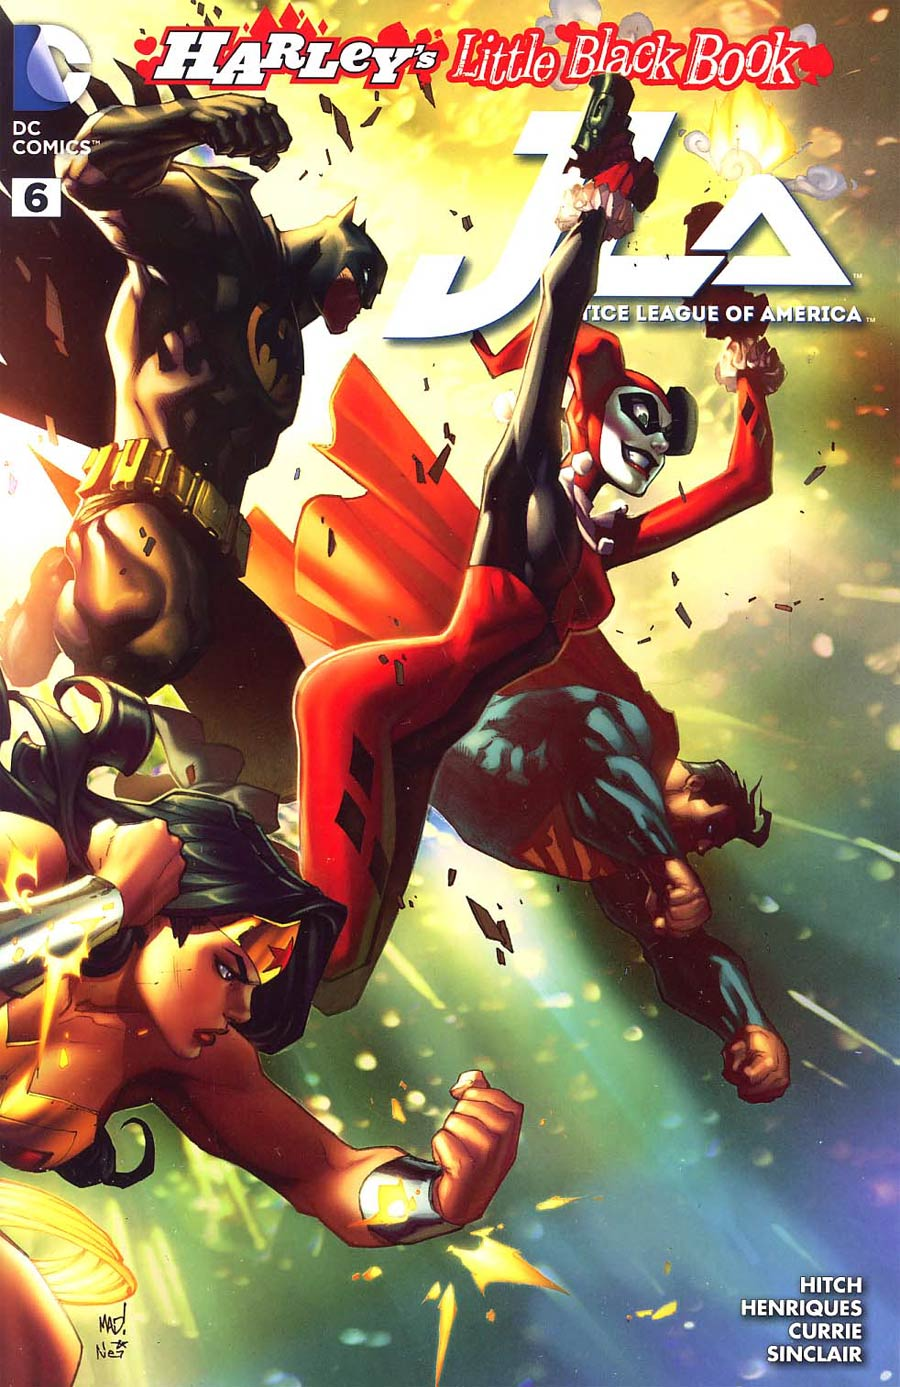 Justice League Of America Vol 4 #6 Cover C Variant Joe Madureira Harley Quinn Cover Without Polybag Color